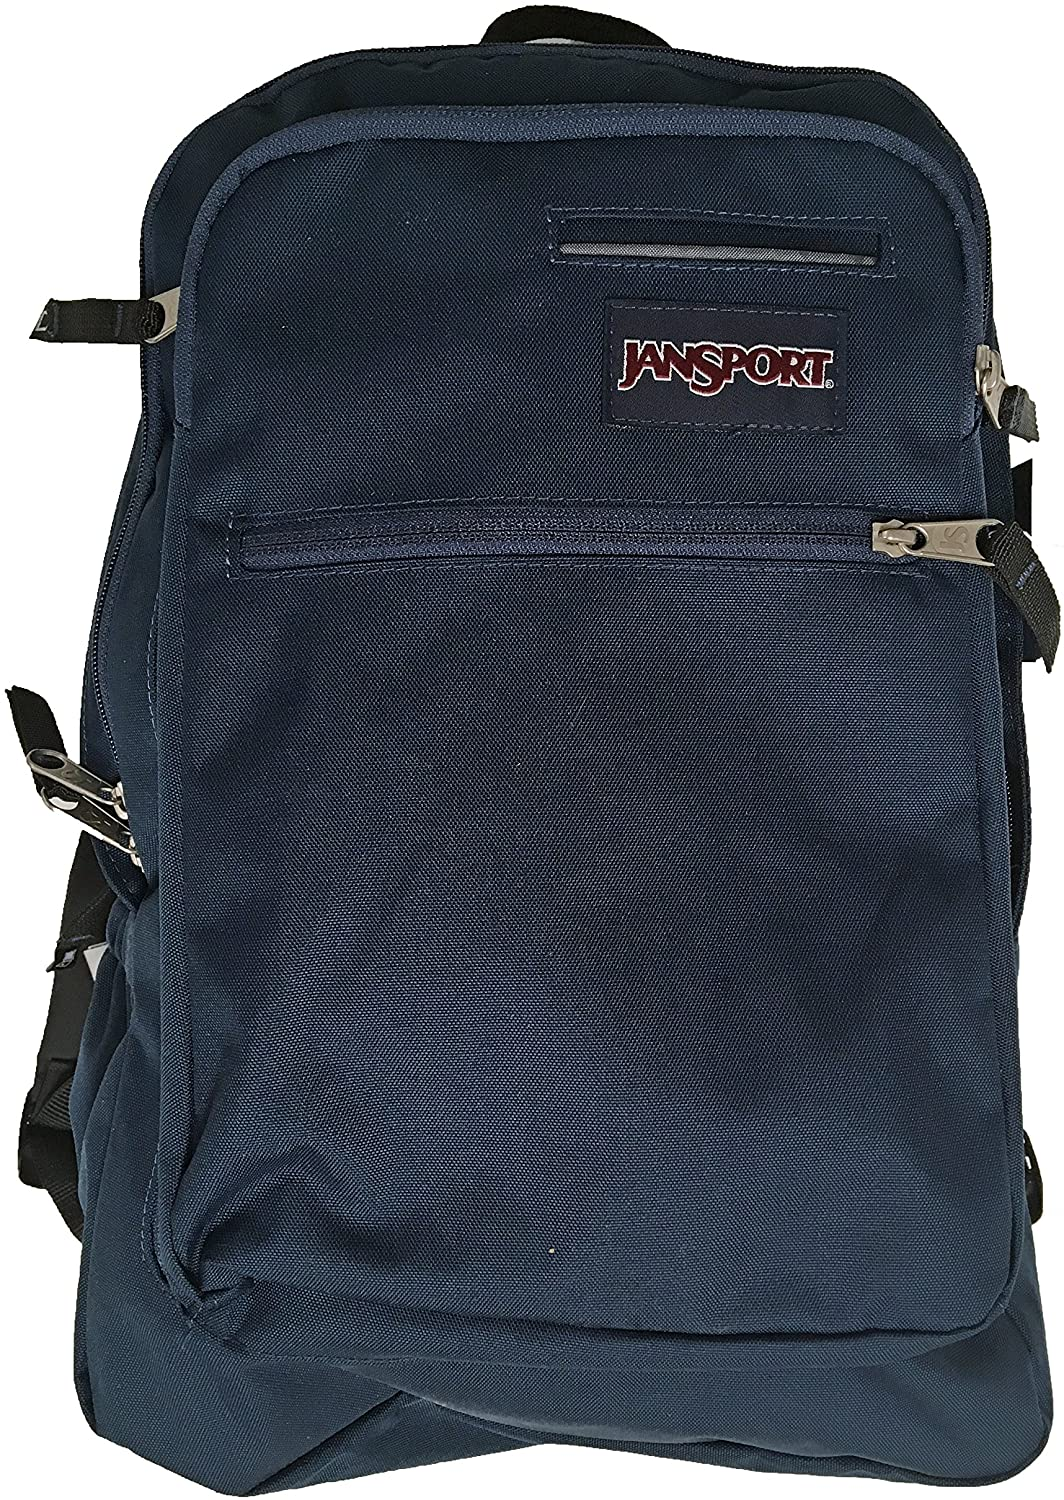 JANSPORT Insider Navy Digital Friendly Backpack with 15 inch Laptop Sleeve